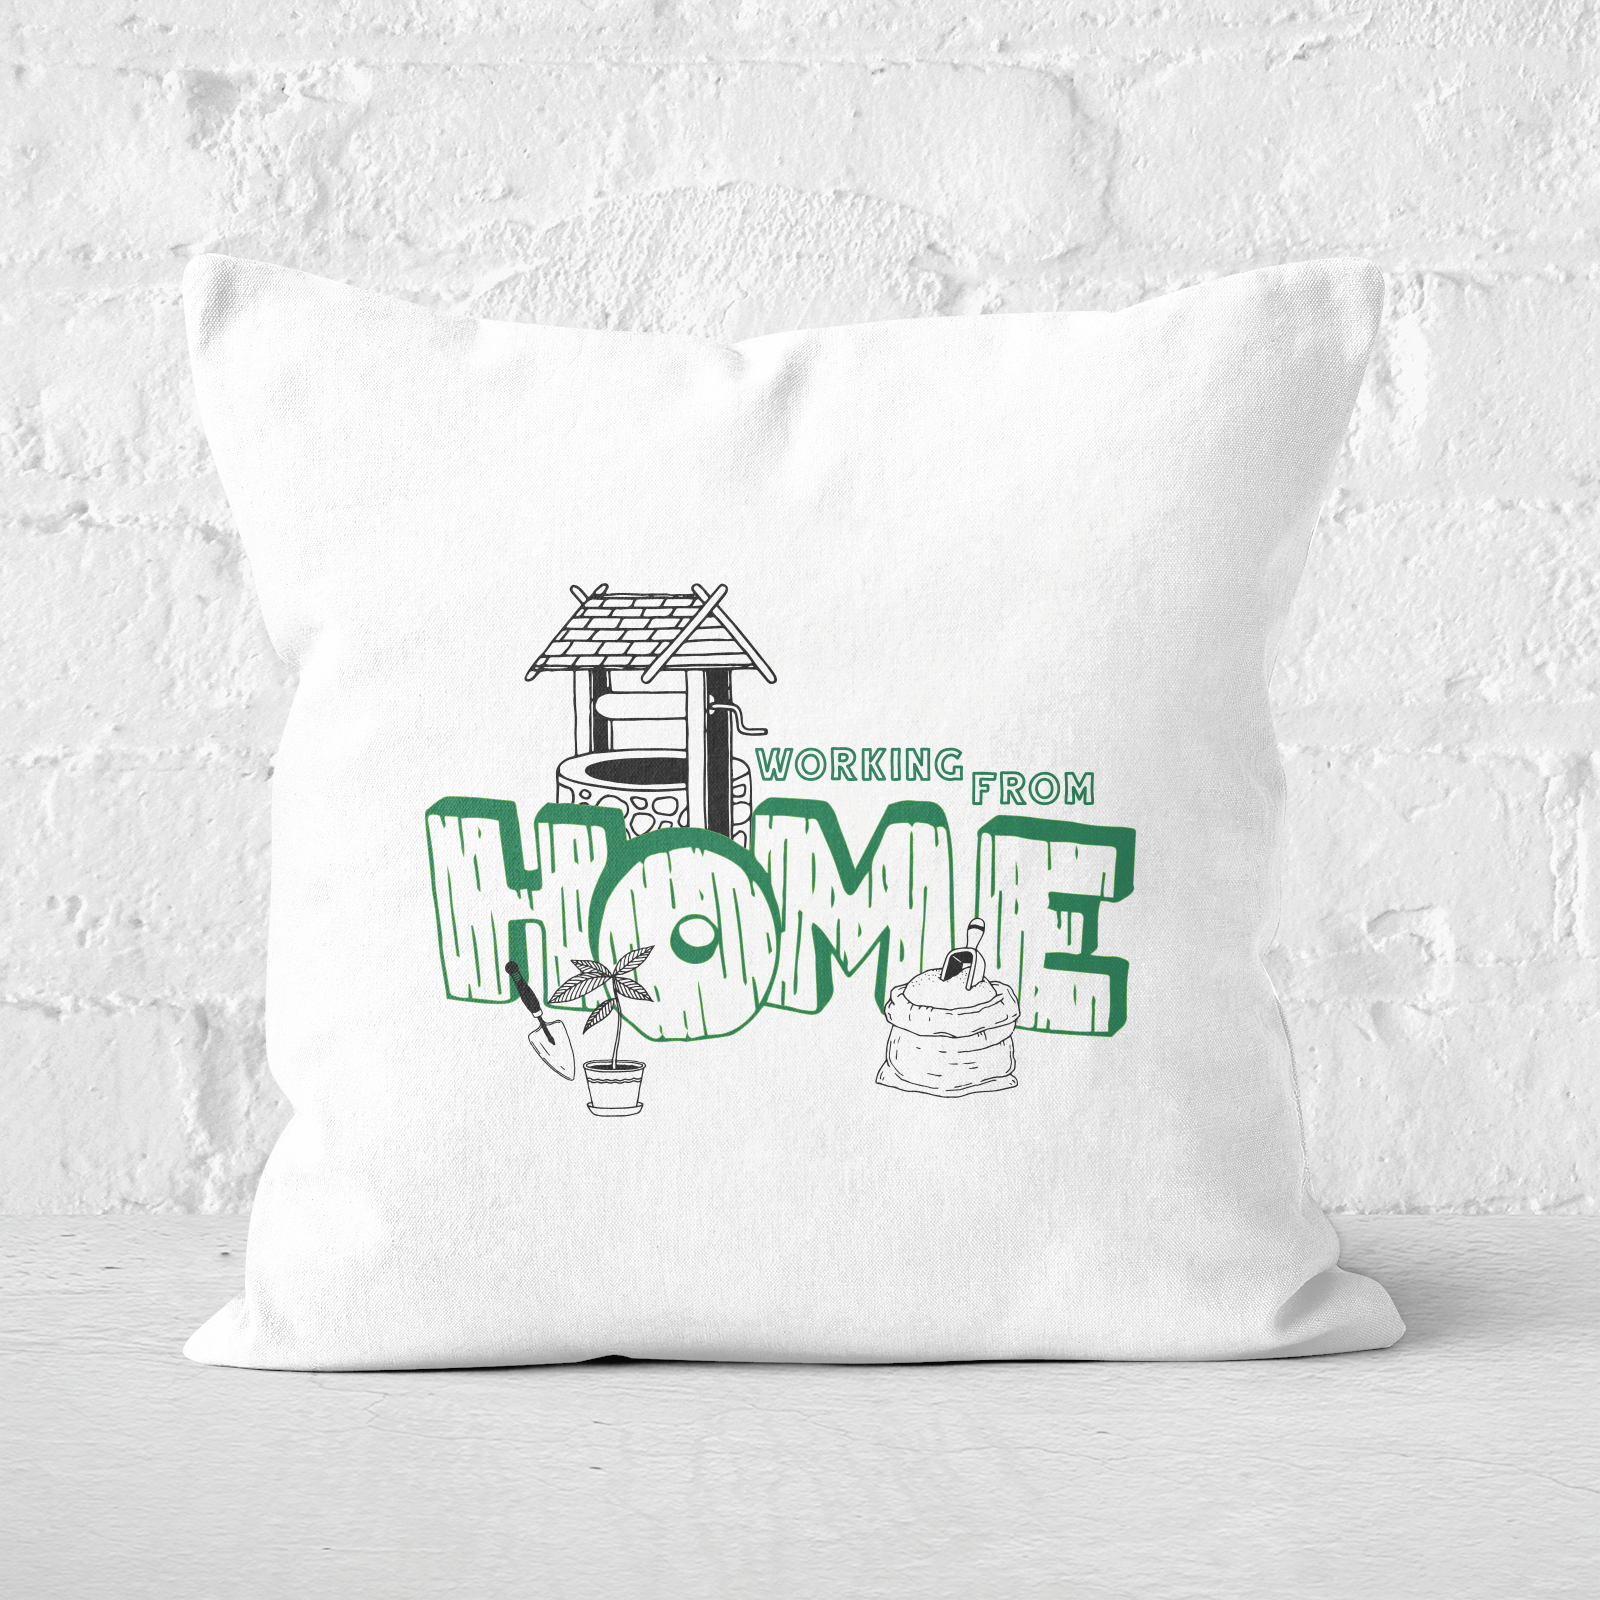 Gardening Working From Home Square Cushion   40x40cm   Soft Touch